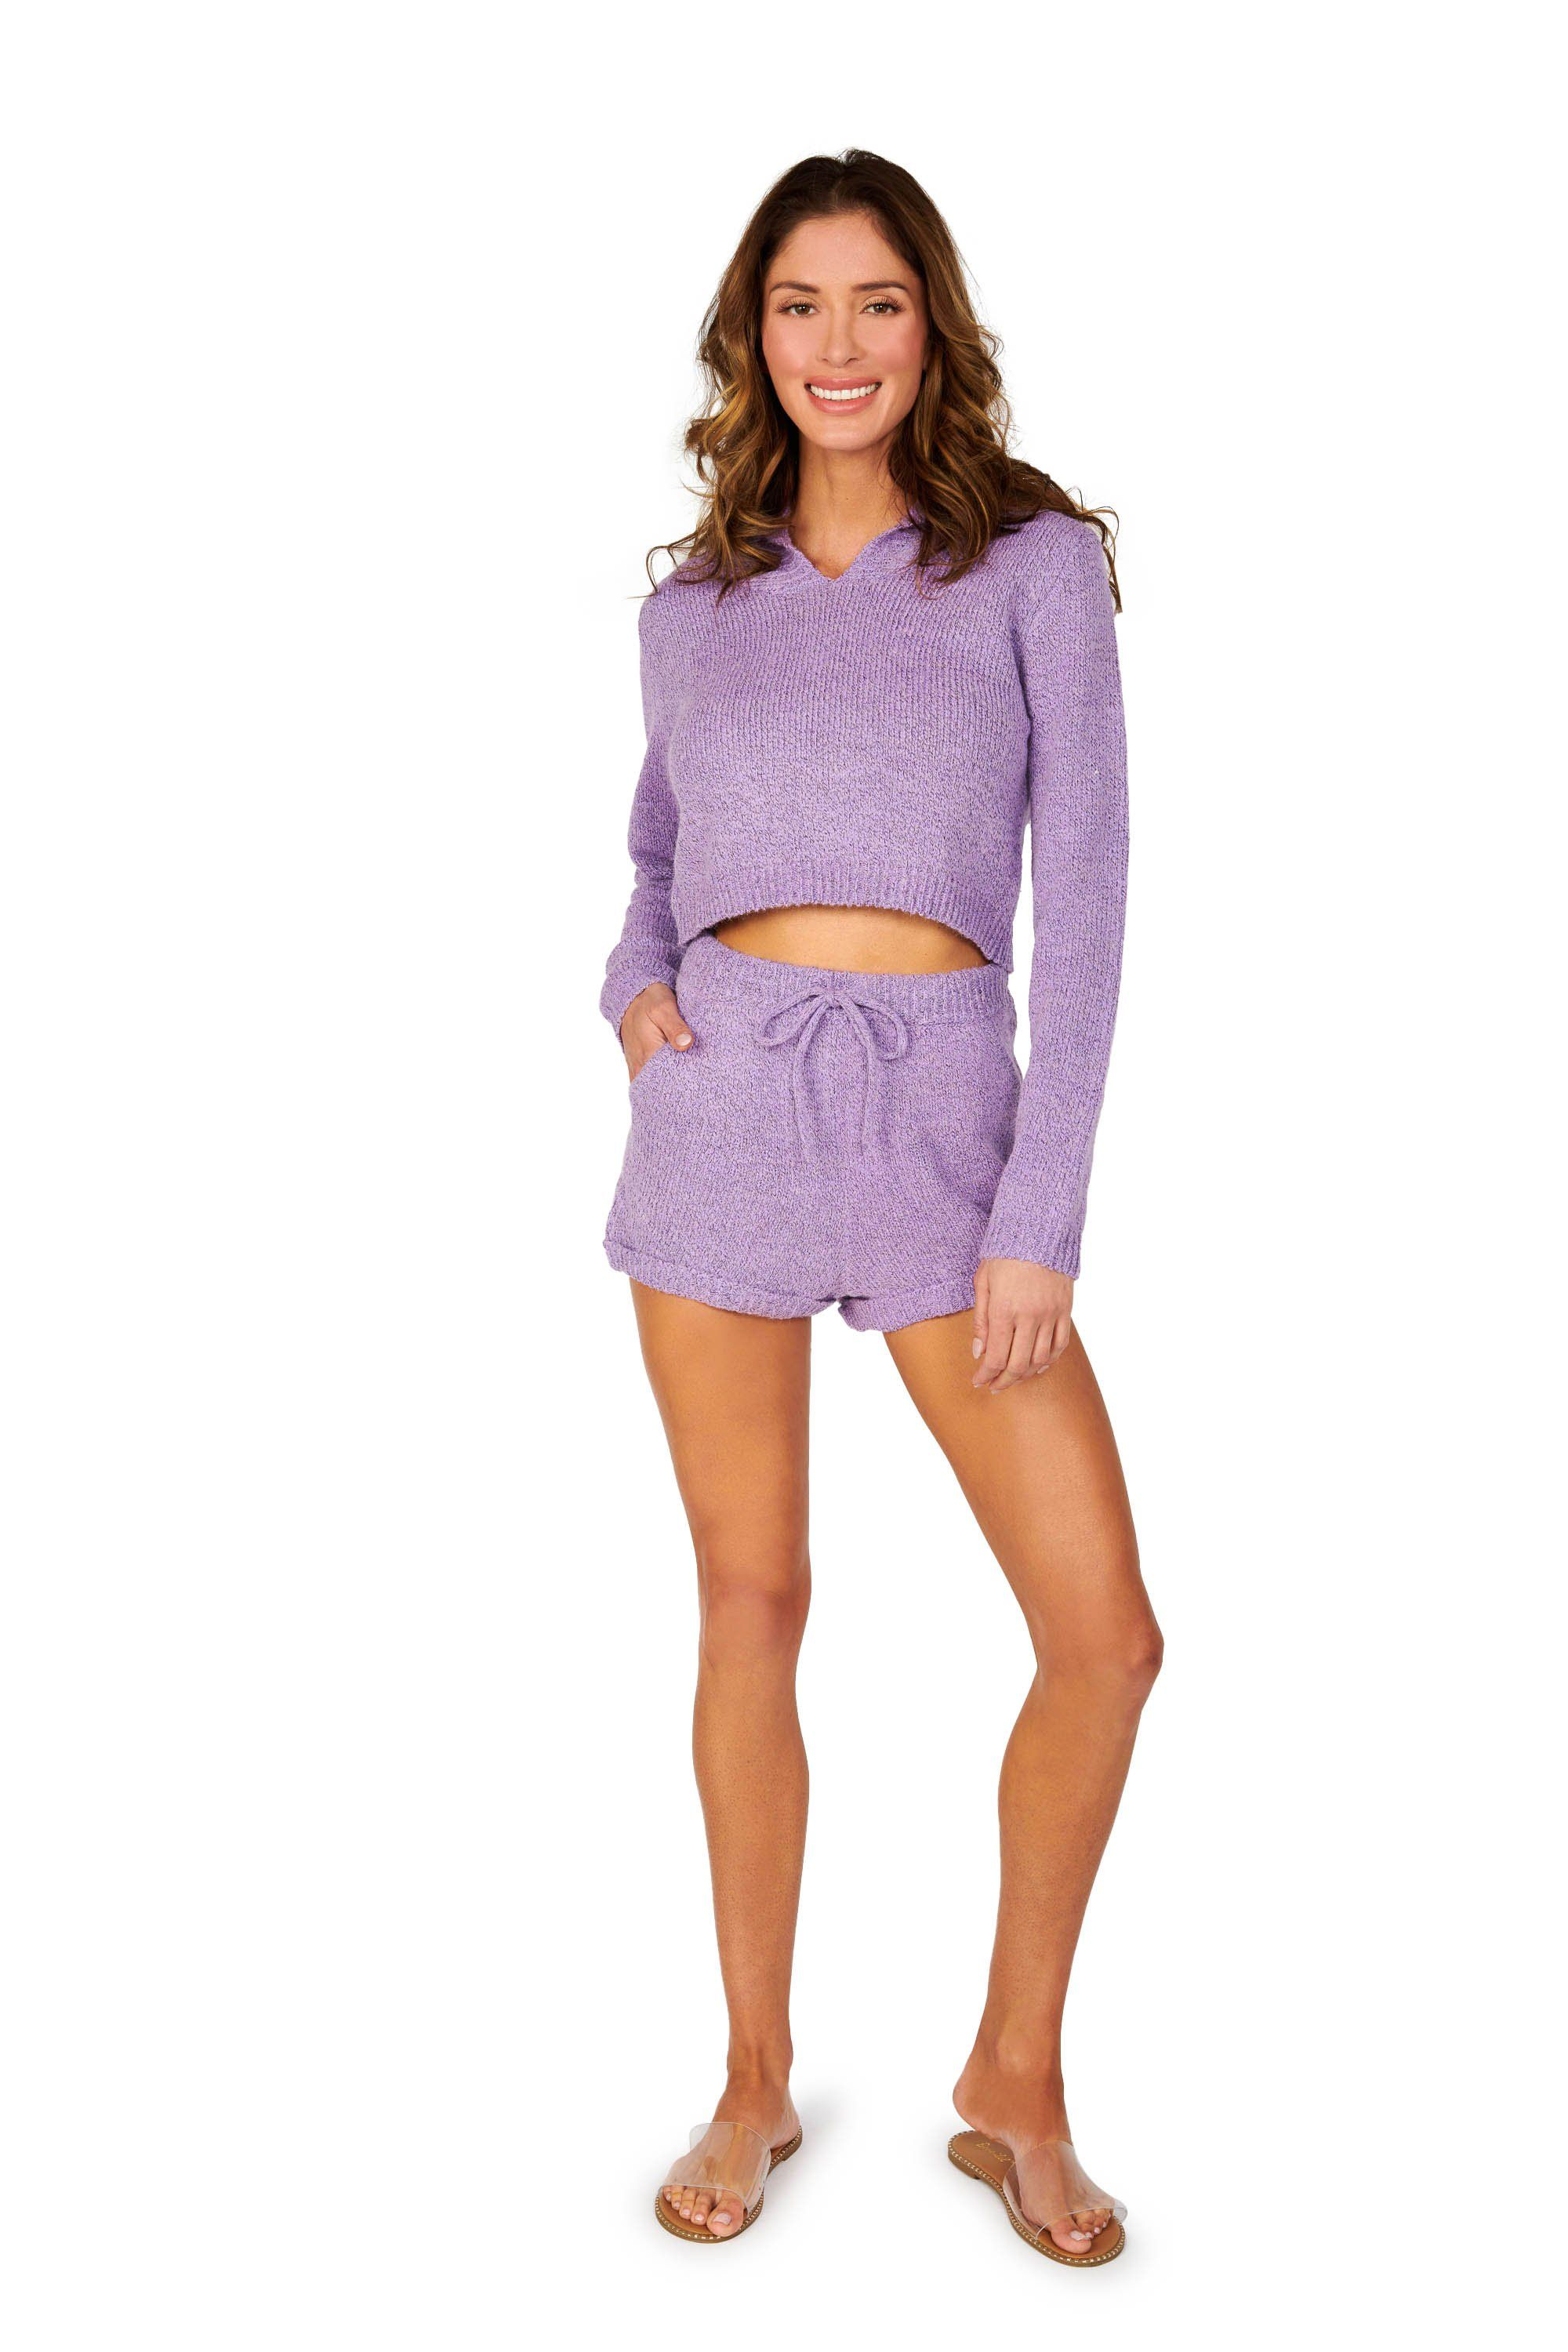 Boyfriend Sweater Brief Purple Shorts Bottoms HYPEACH BOUTIQUE